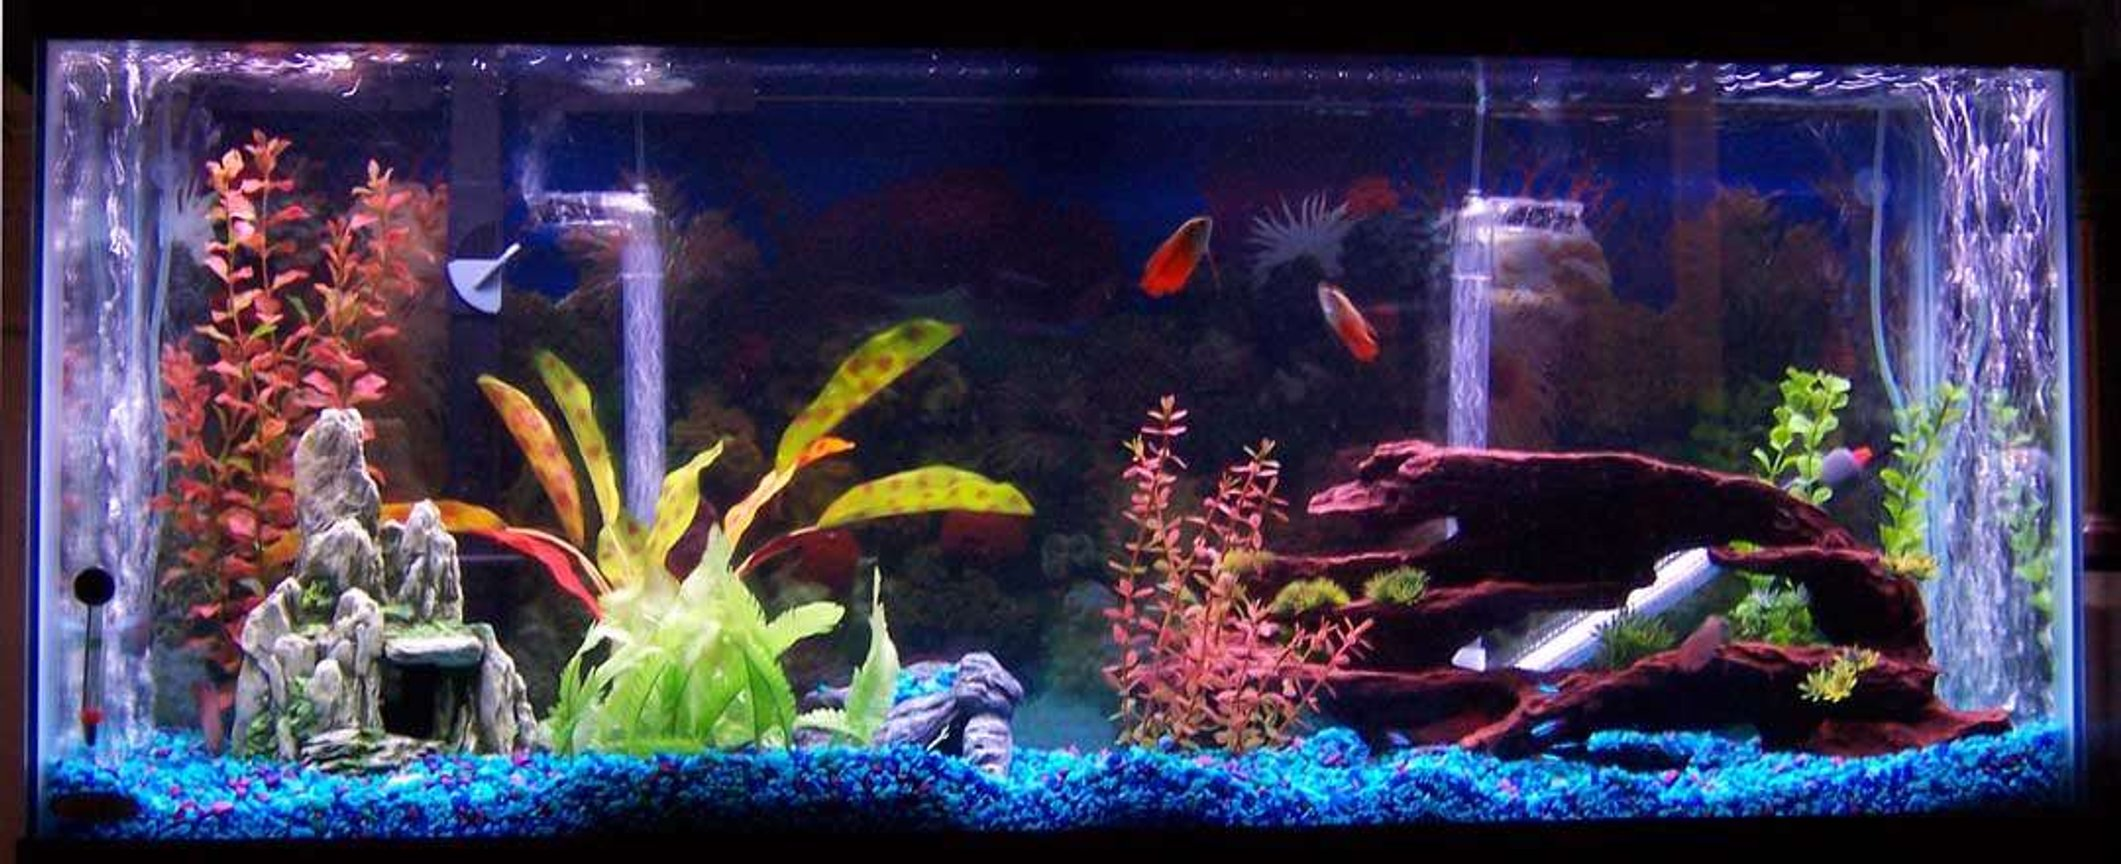 55 gallons freshwater fish tank (mostly fish and non-living decorations) - my 55 gallon tank, its about 3 month old have some fish in there.